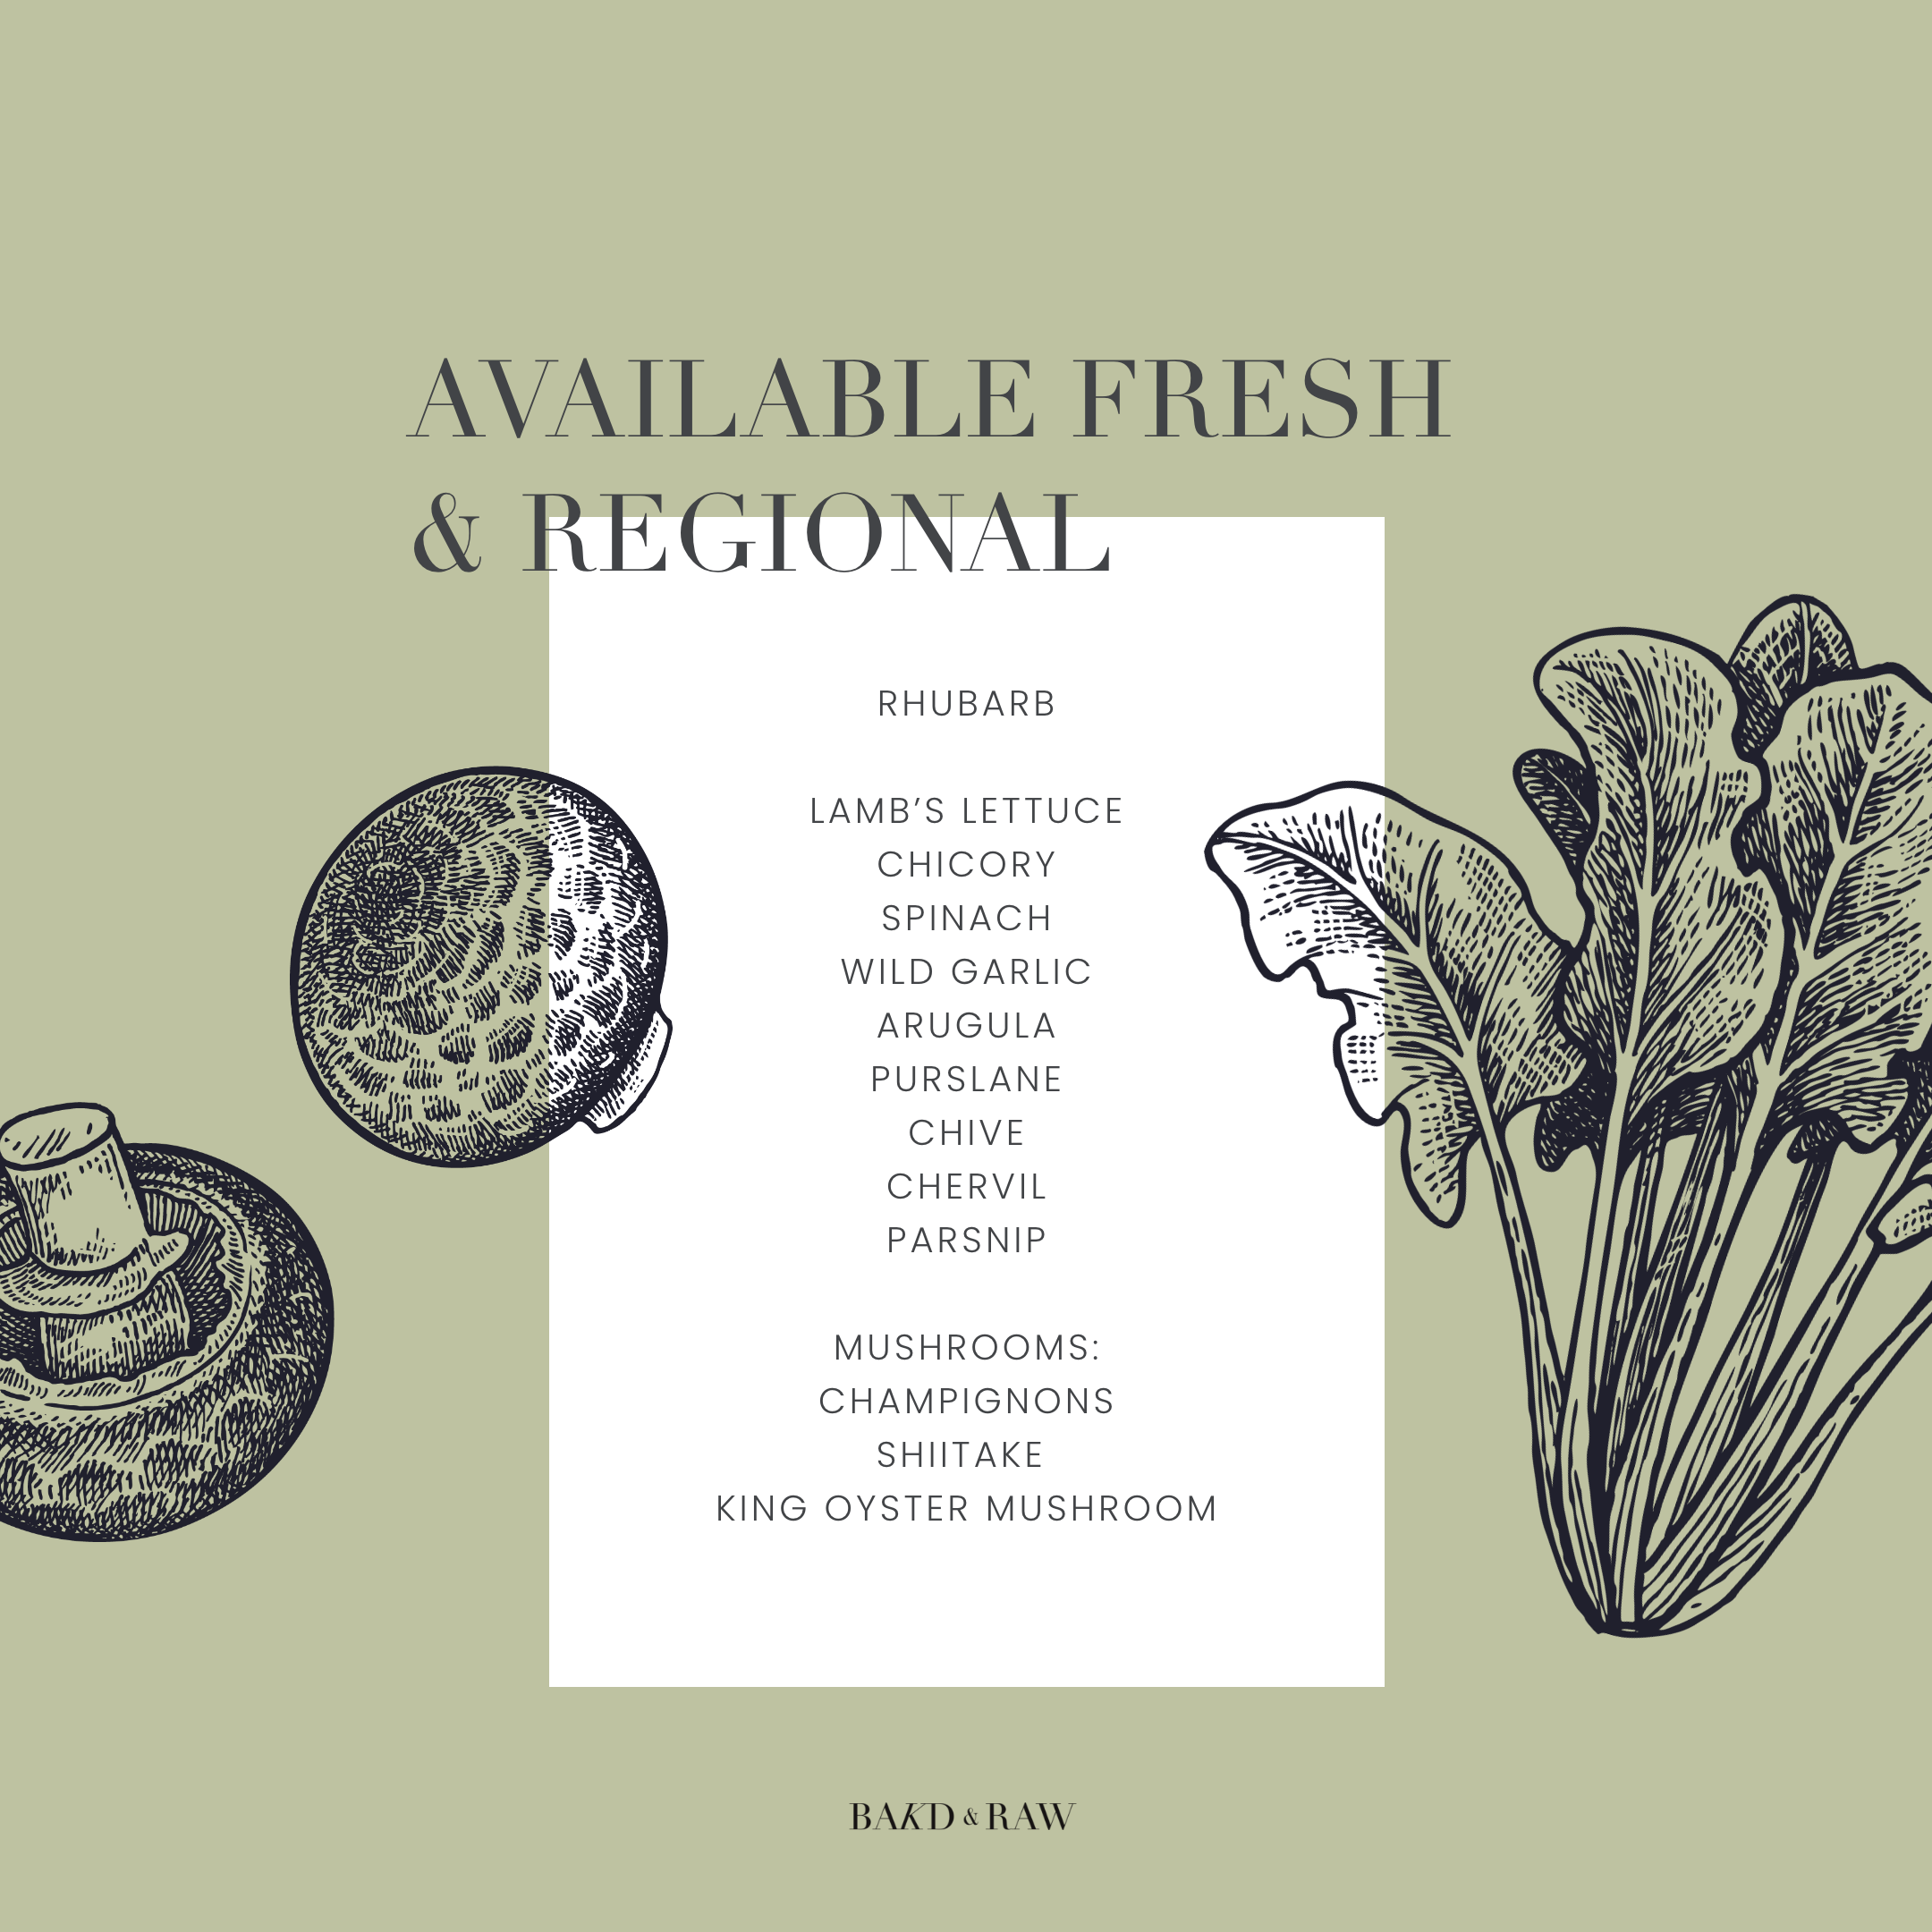 Seasonal Produce March Overview Freshly Available in Germany by Karolin Baitinger - Bakd&Raw